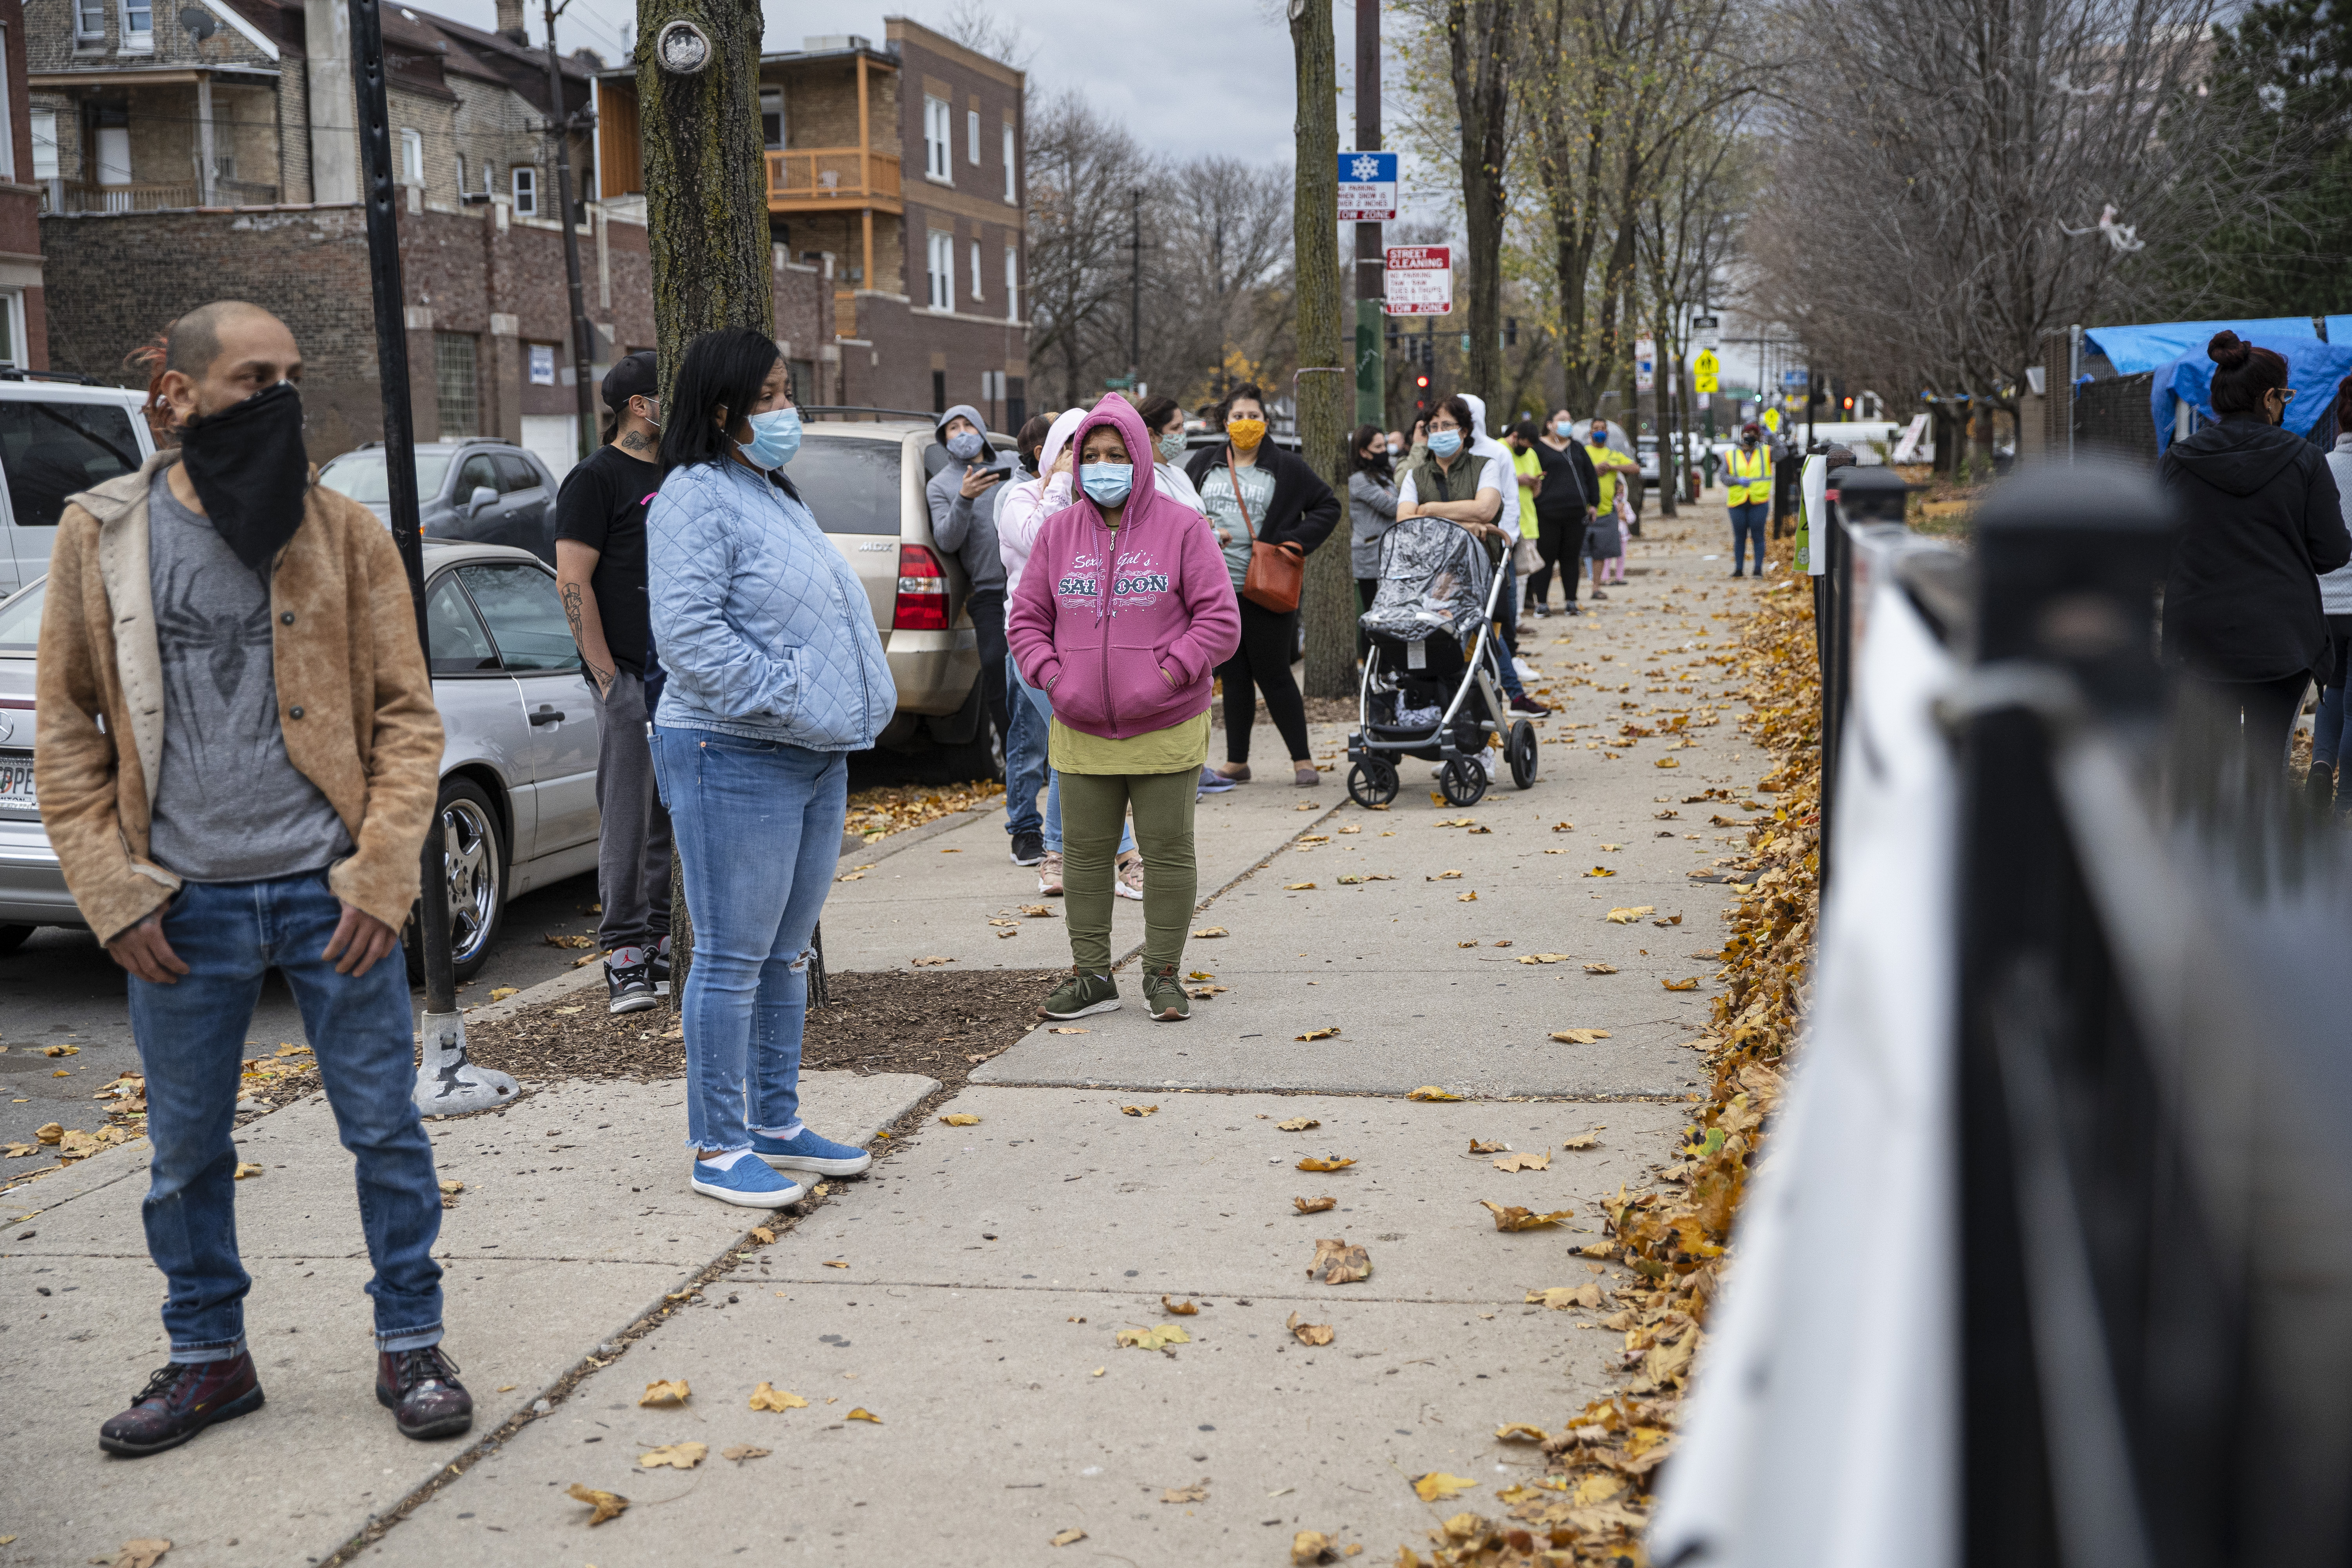 Residents line up for COVID-19 tests last fall at Maria Saucedo Scholastic Academy, at 2850 W. 24th Blvd. Illinois' case positivity rate has doubled over the past two weeks, though it's still very low compared to the worst days of the pandemic.